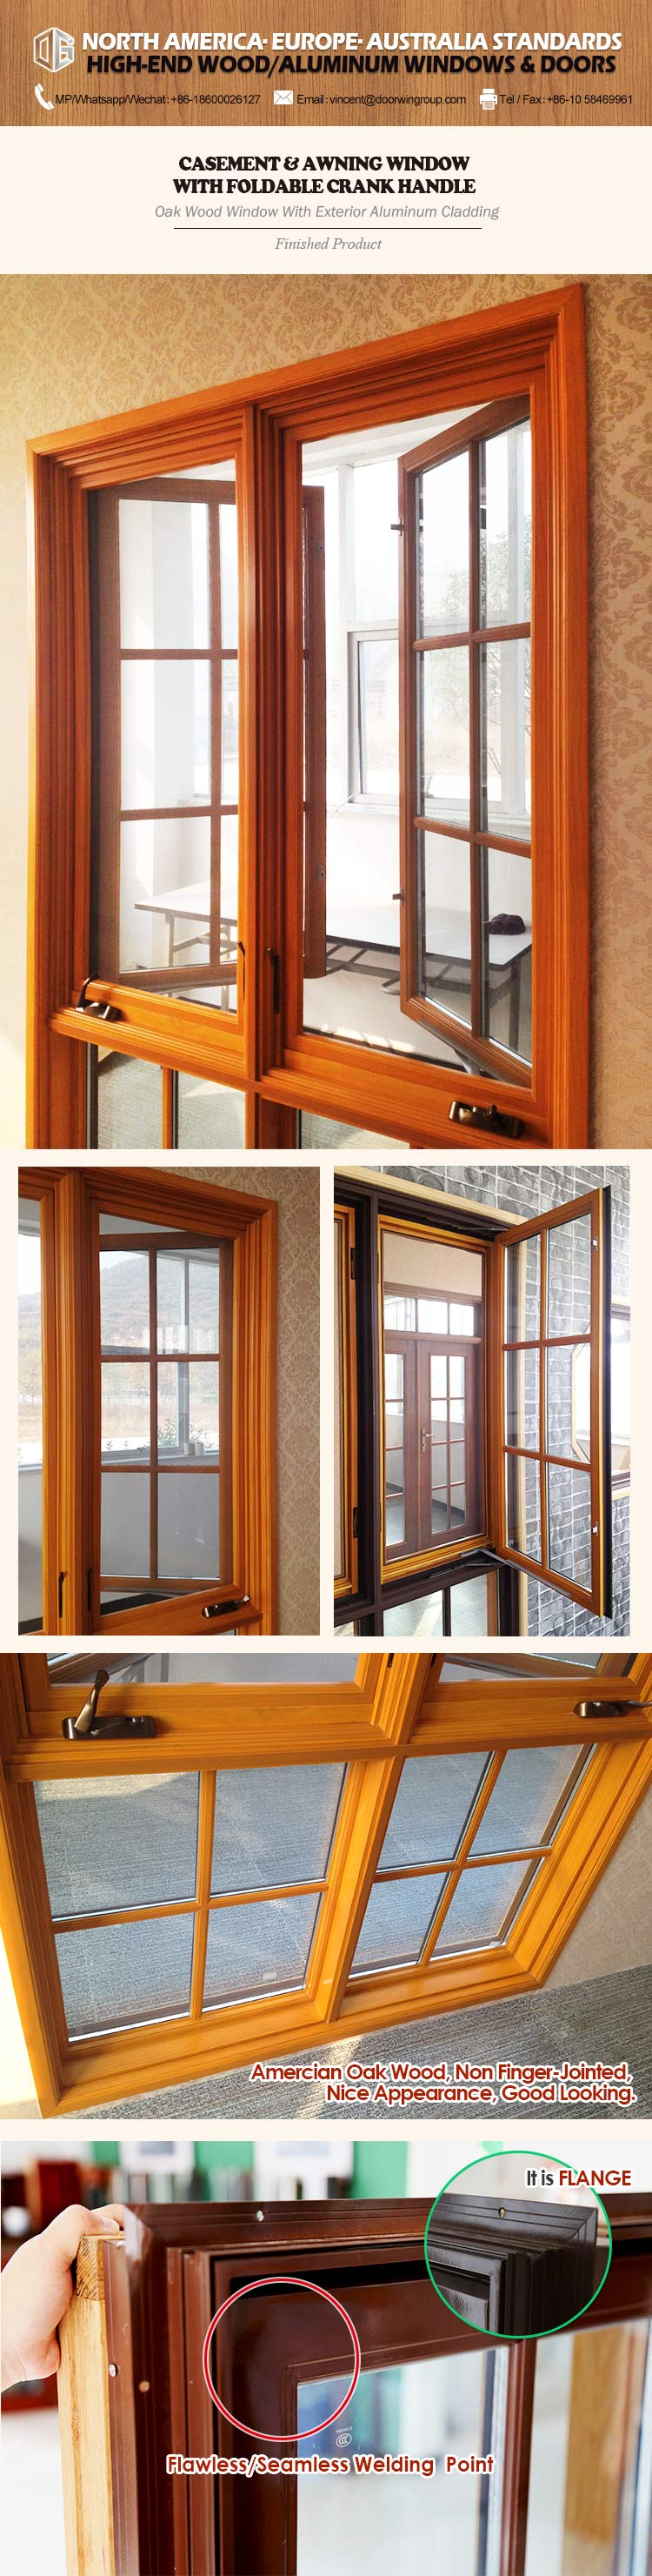 Wholesale price aluminium windows that look like timber